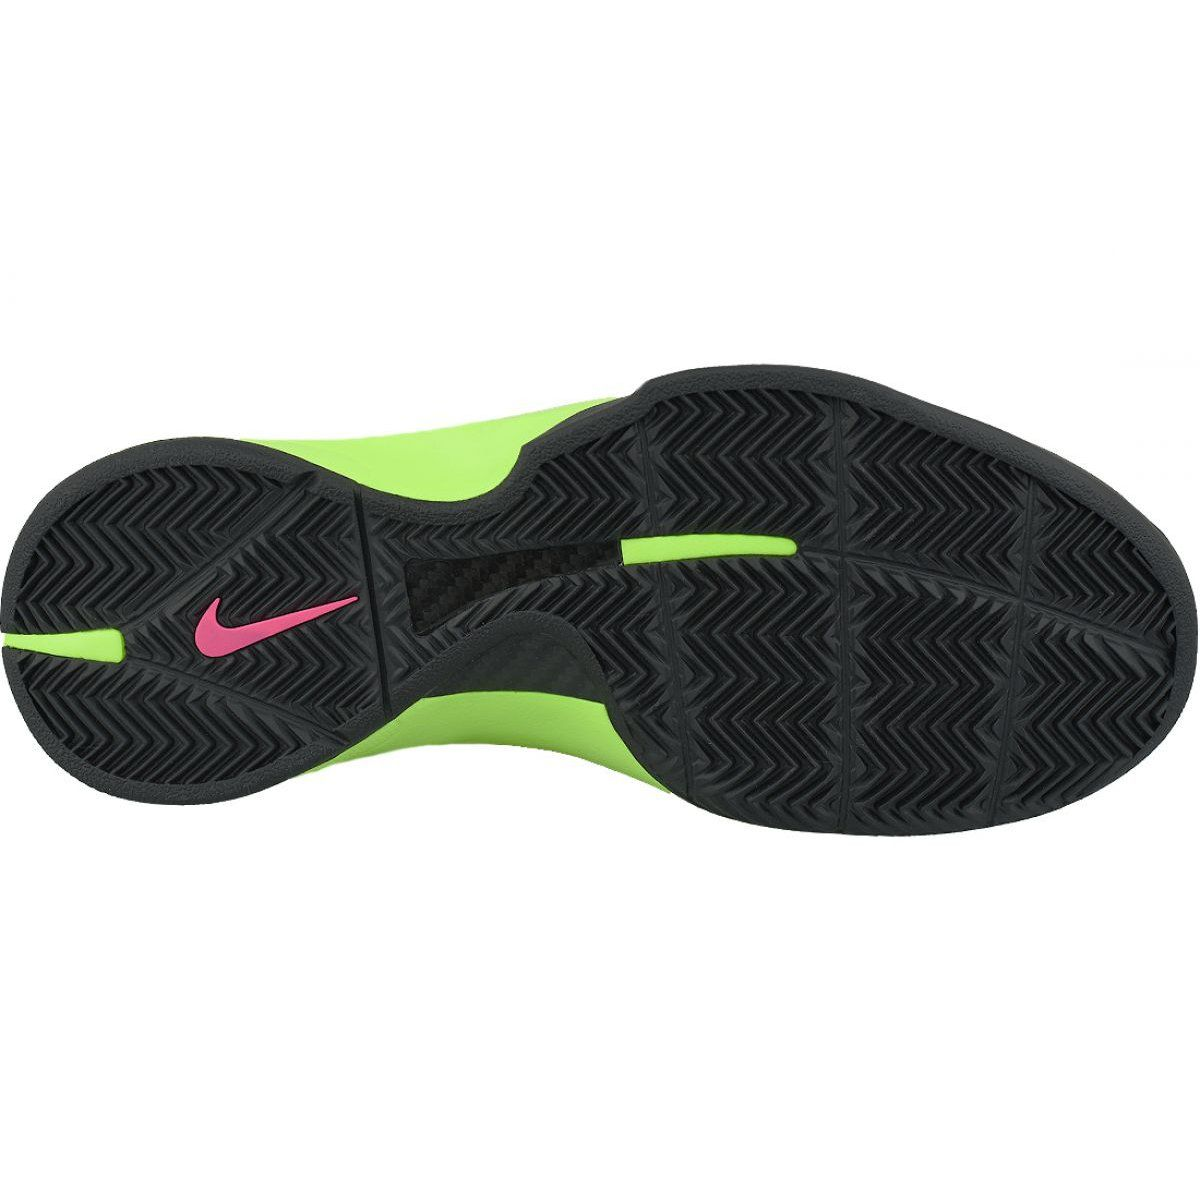 Buty Nike Air Zoom Hyperattack M 881485 999 Zolte Nike Air Mens Nike Shoes Nike Air Zoom